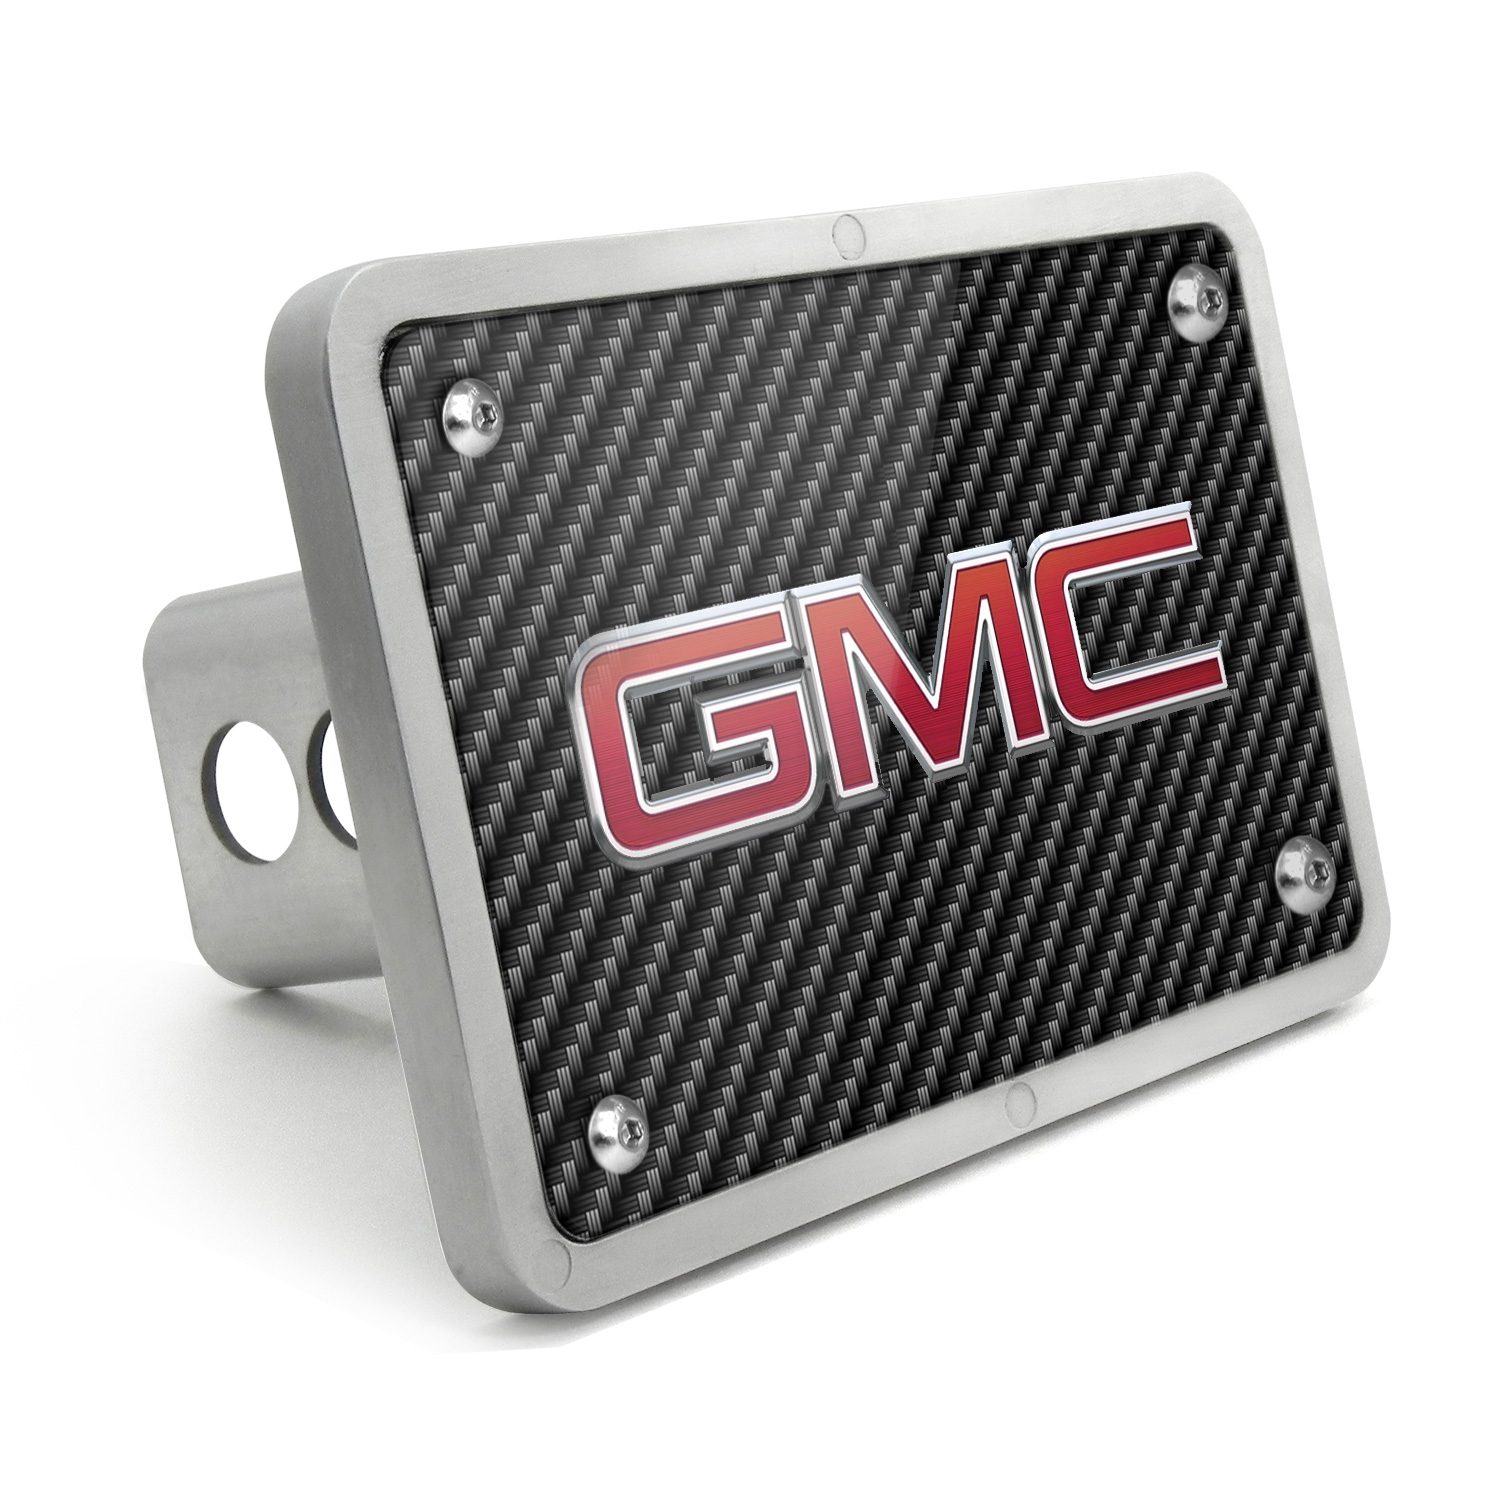 GMC 2010 UV Graphic Carbon Fiber Texture Billet Aluminum 2 inch Tow Hitch Cover